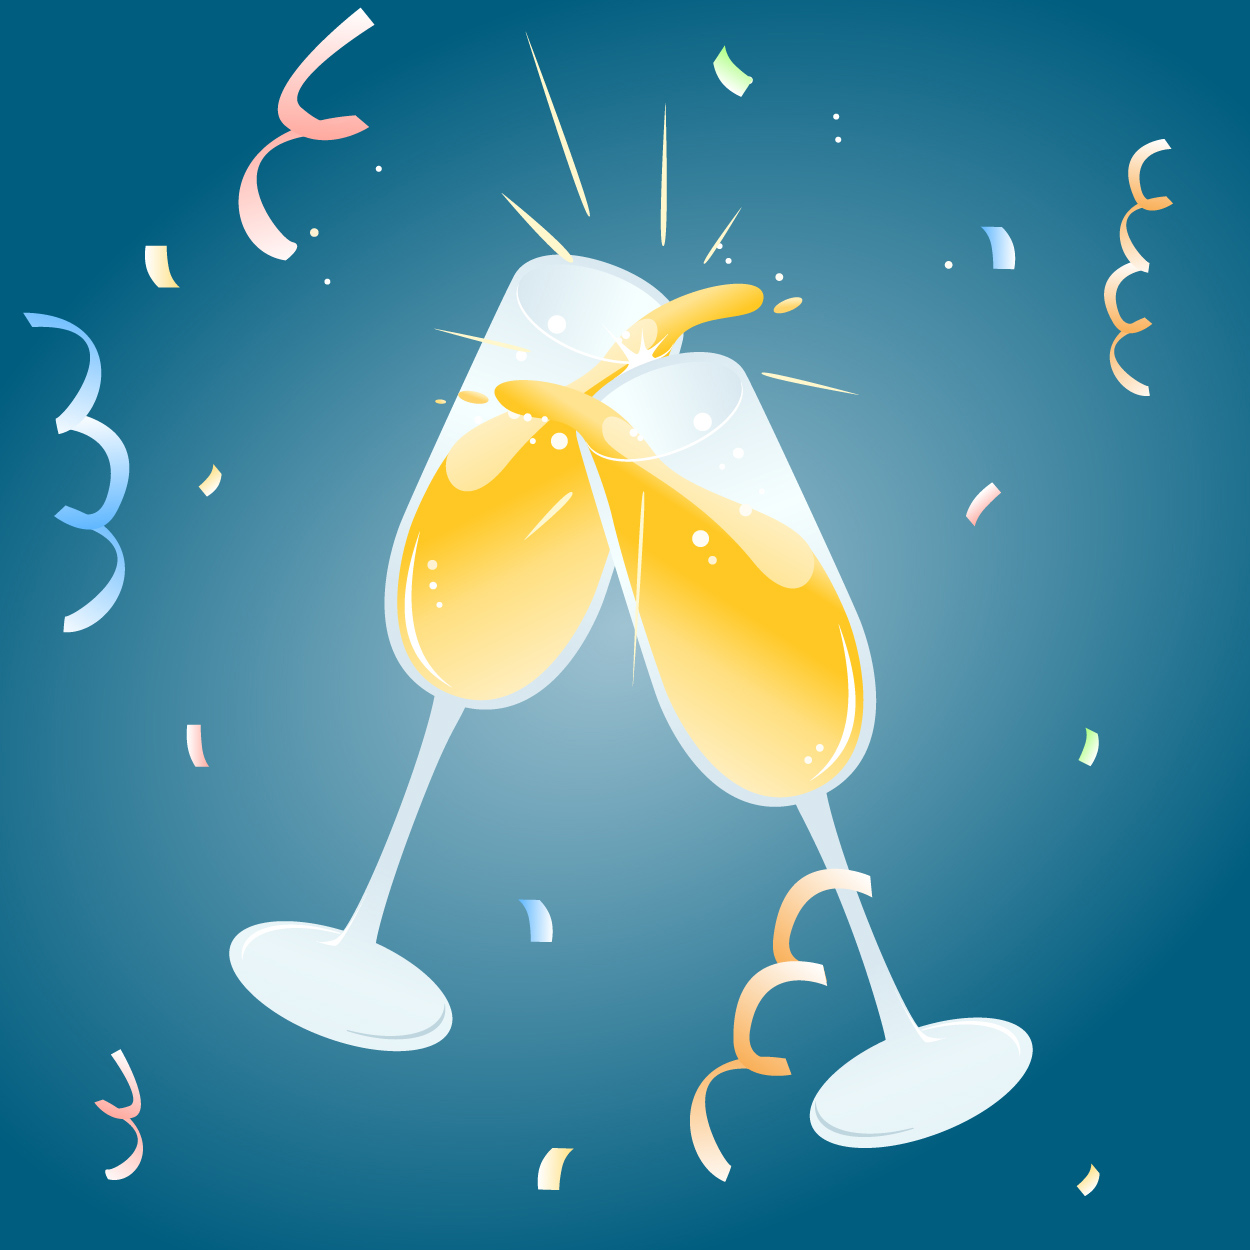 Celebration Toast Vector illustration of two champagne glasses